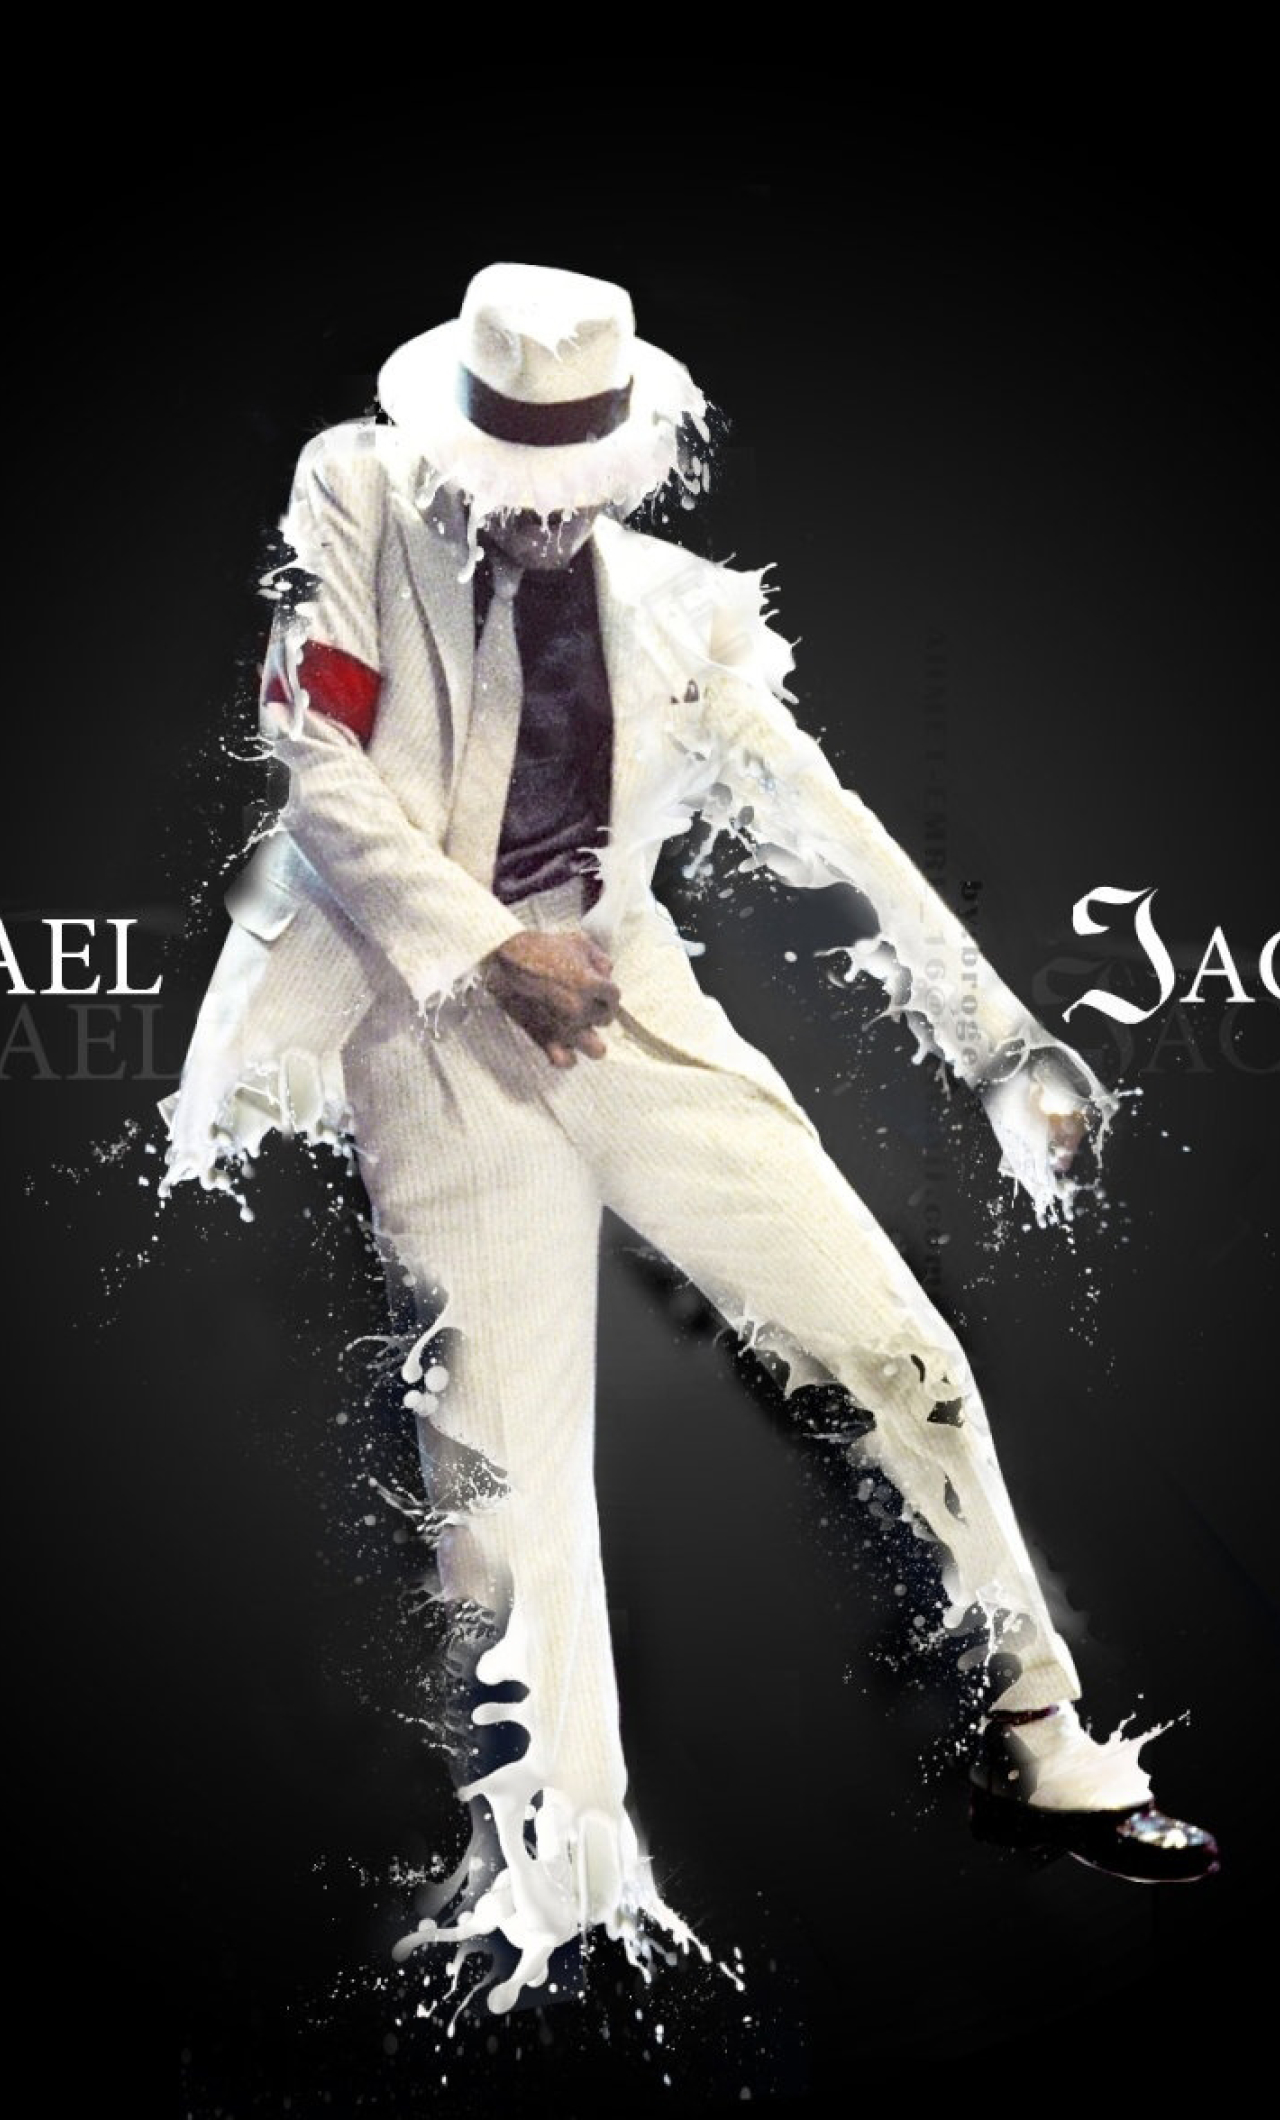 Download Michael Jackson Photoshoot 320x480 Resolution